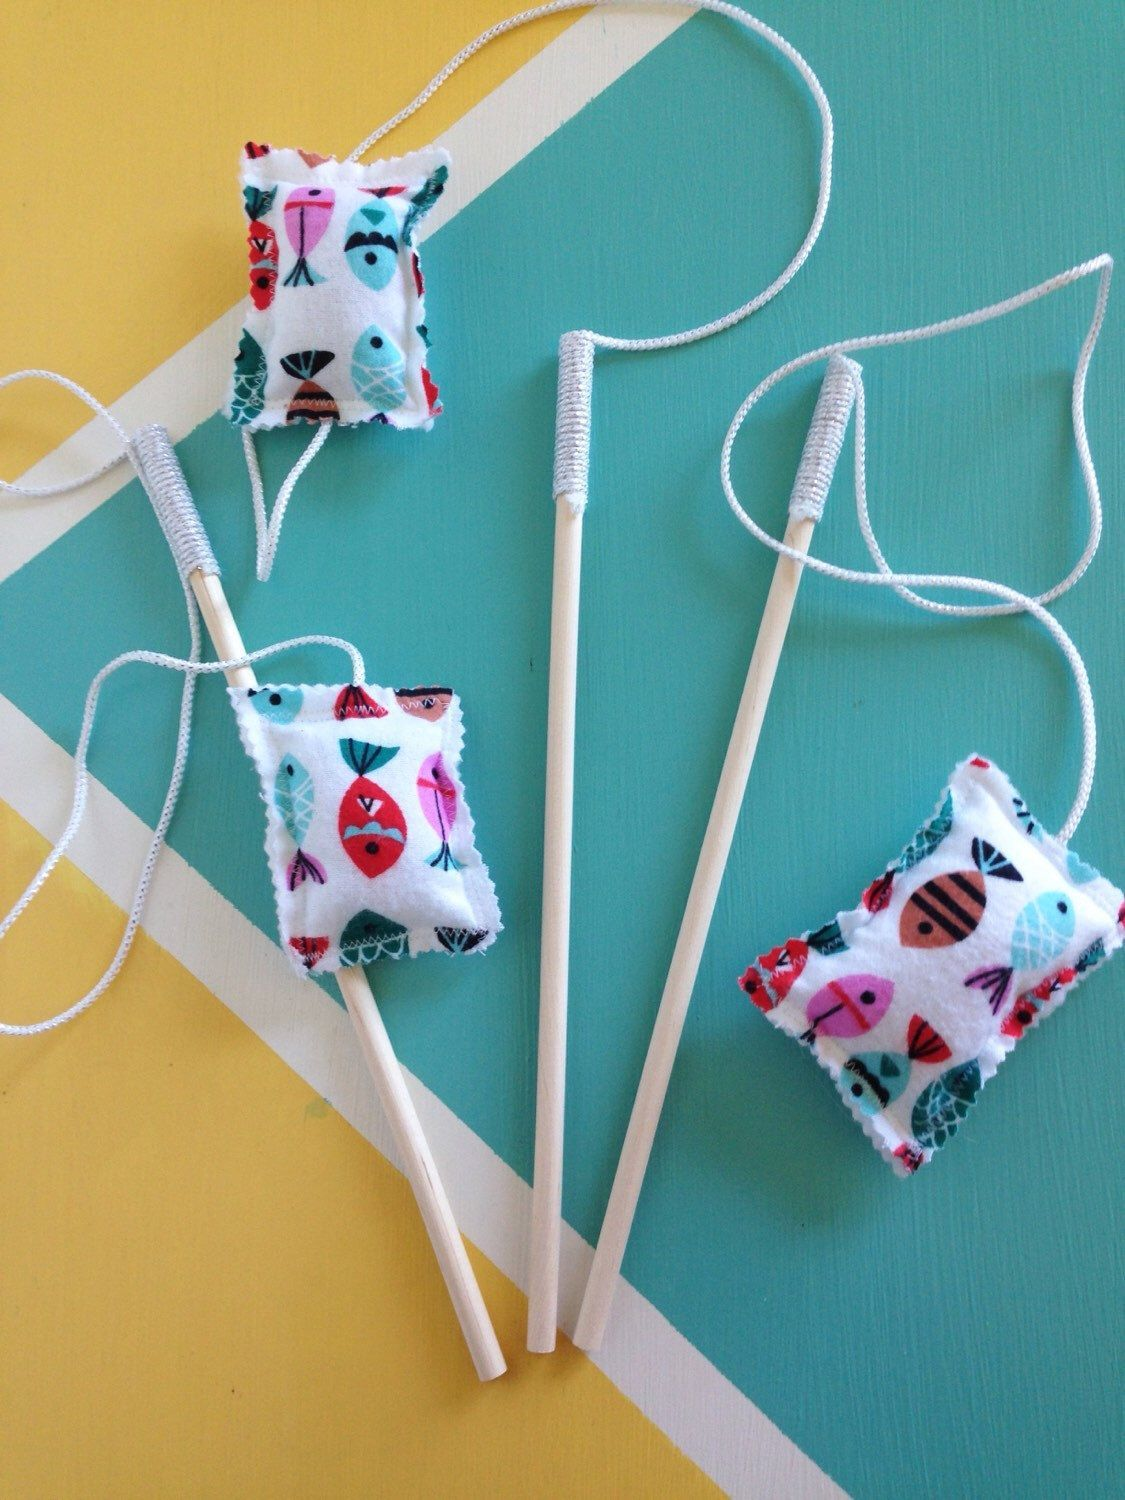 3 Easy Diy Storage Ideas For Small Kitchen: 16 Easy DIY Cat Toys You Can Make For Your Kitty